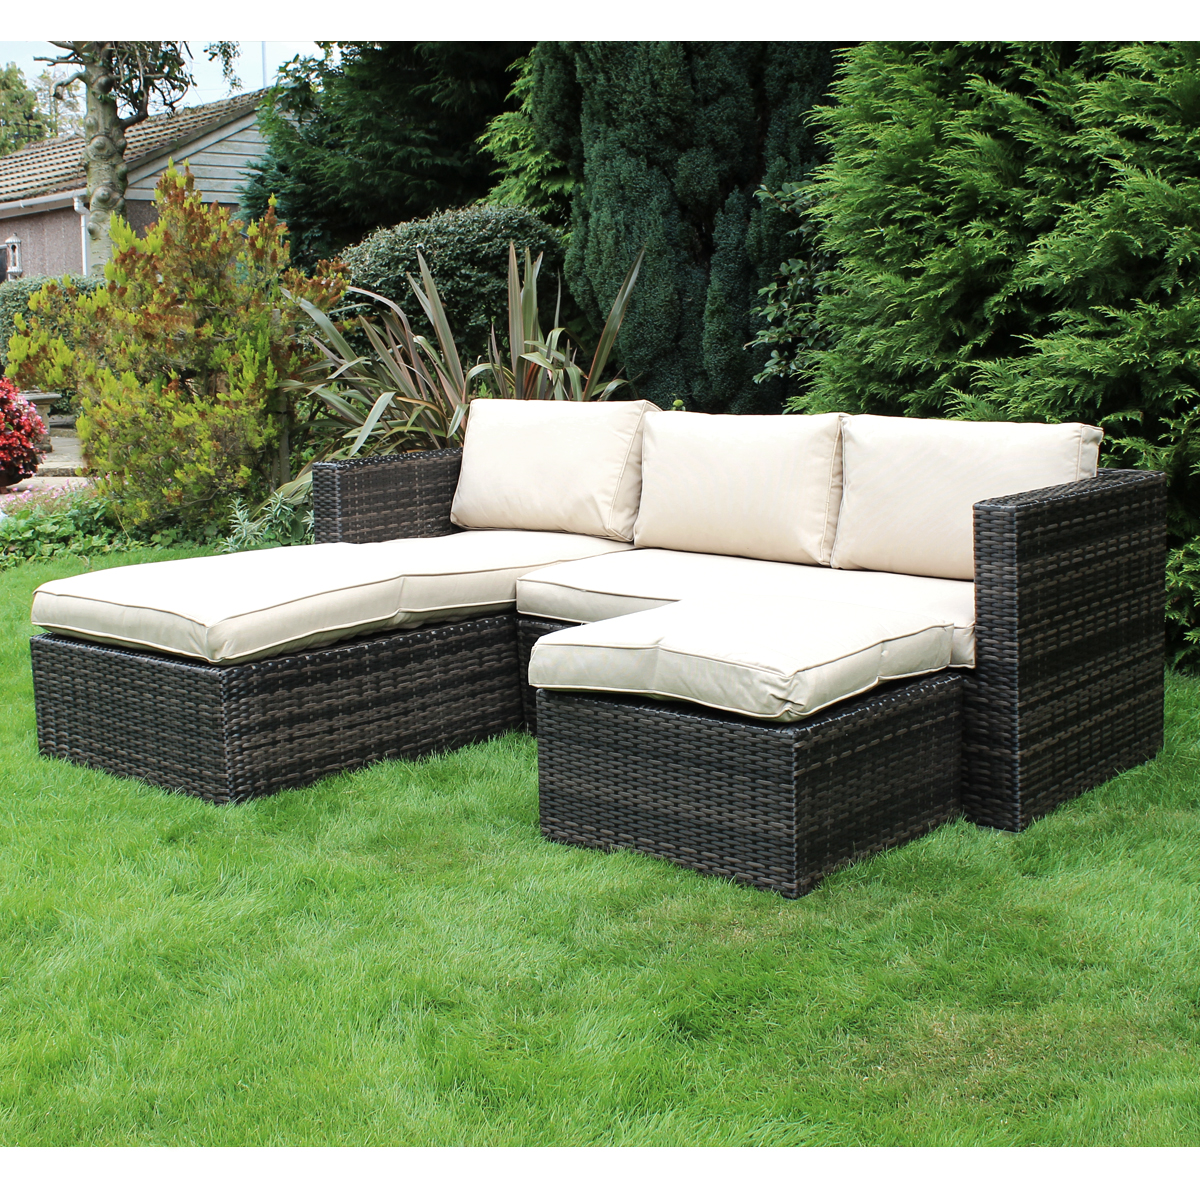 charles bentley garden l shaped rattan corner sofa outdoor